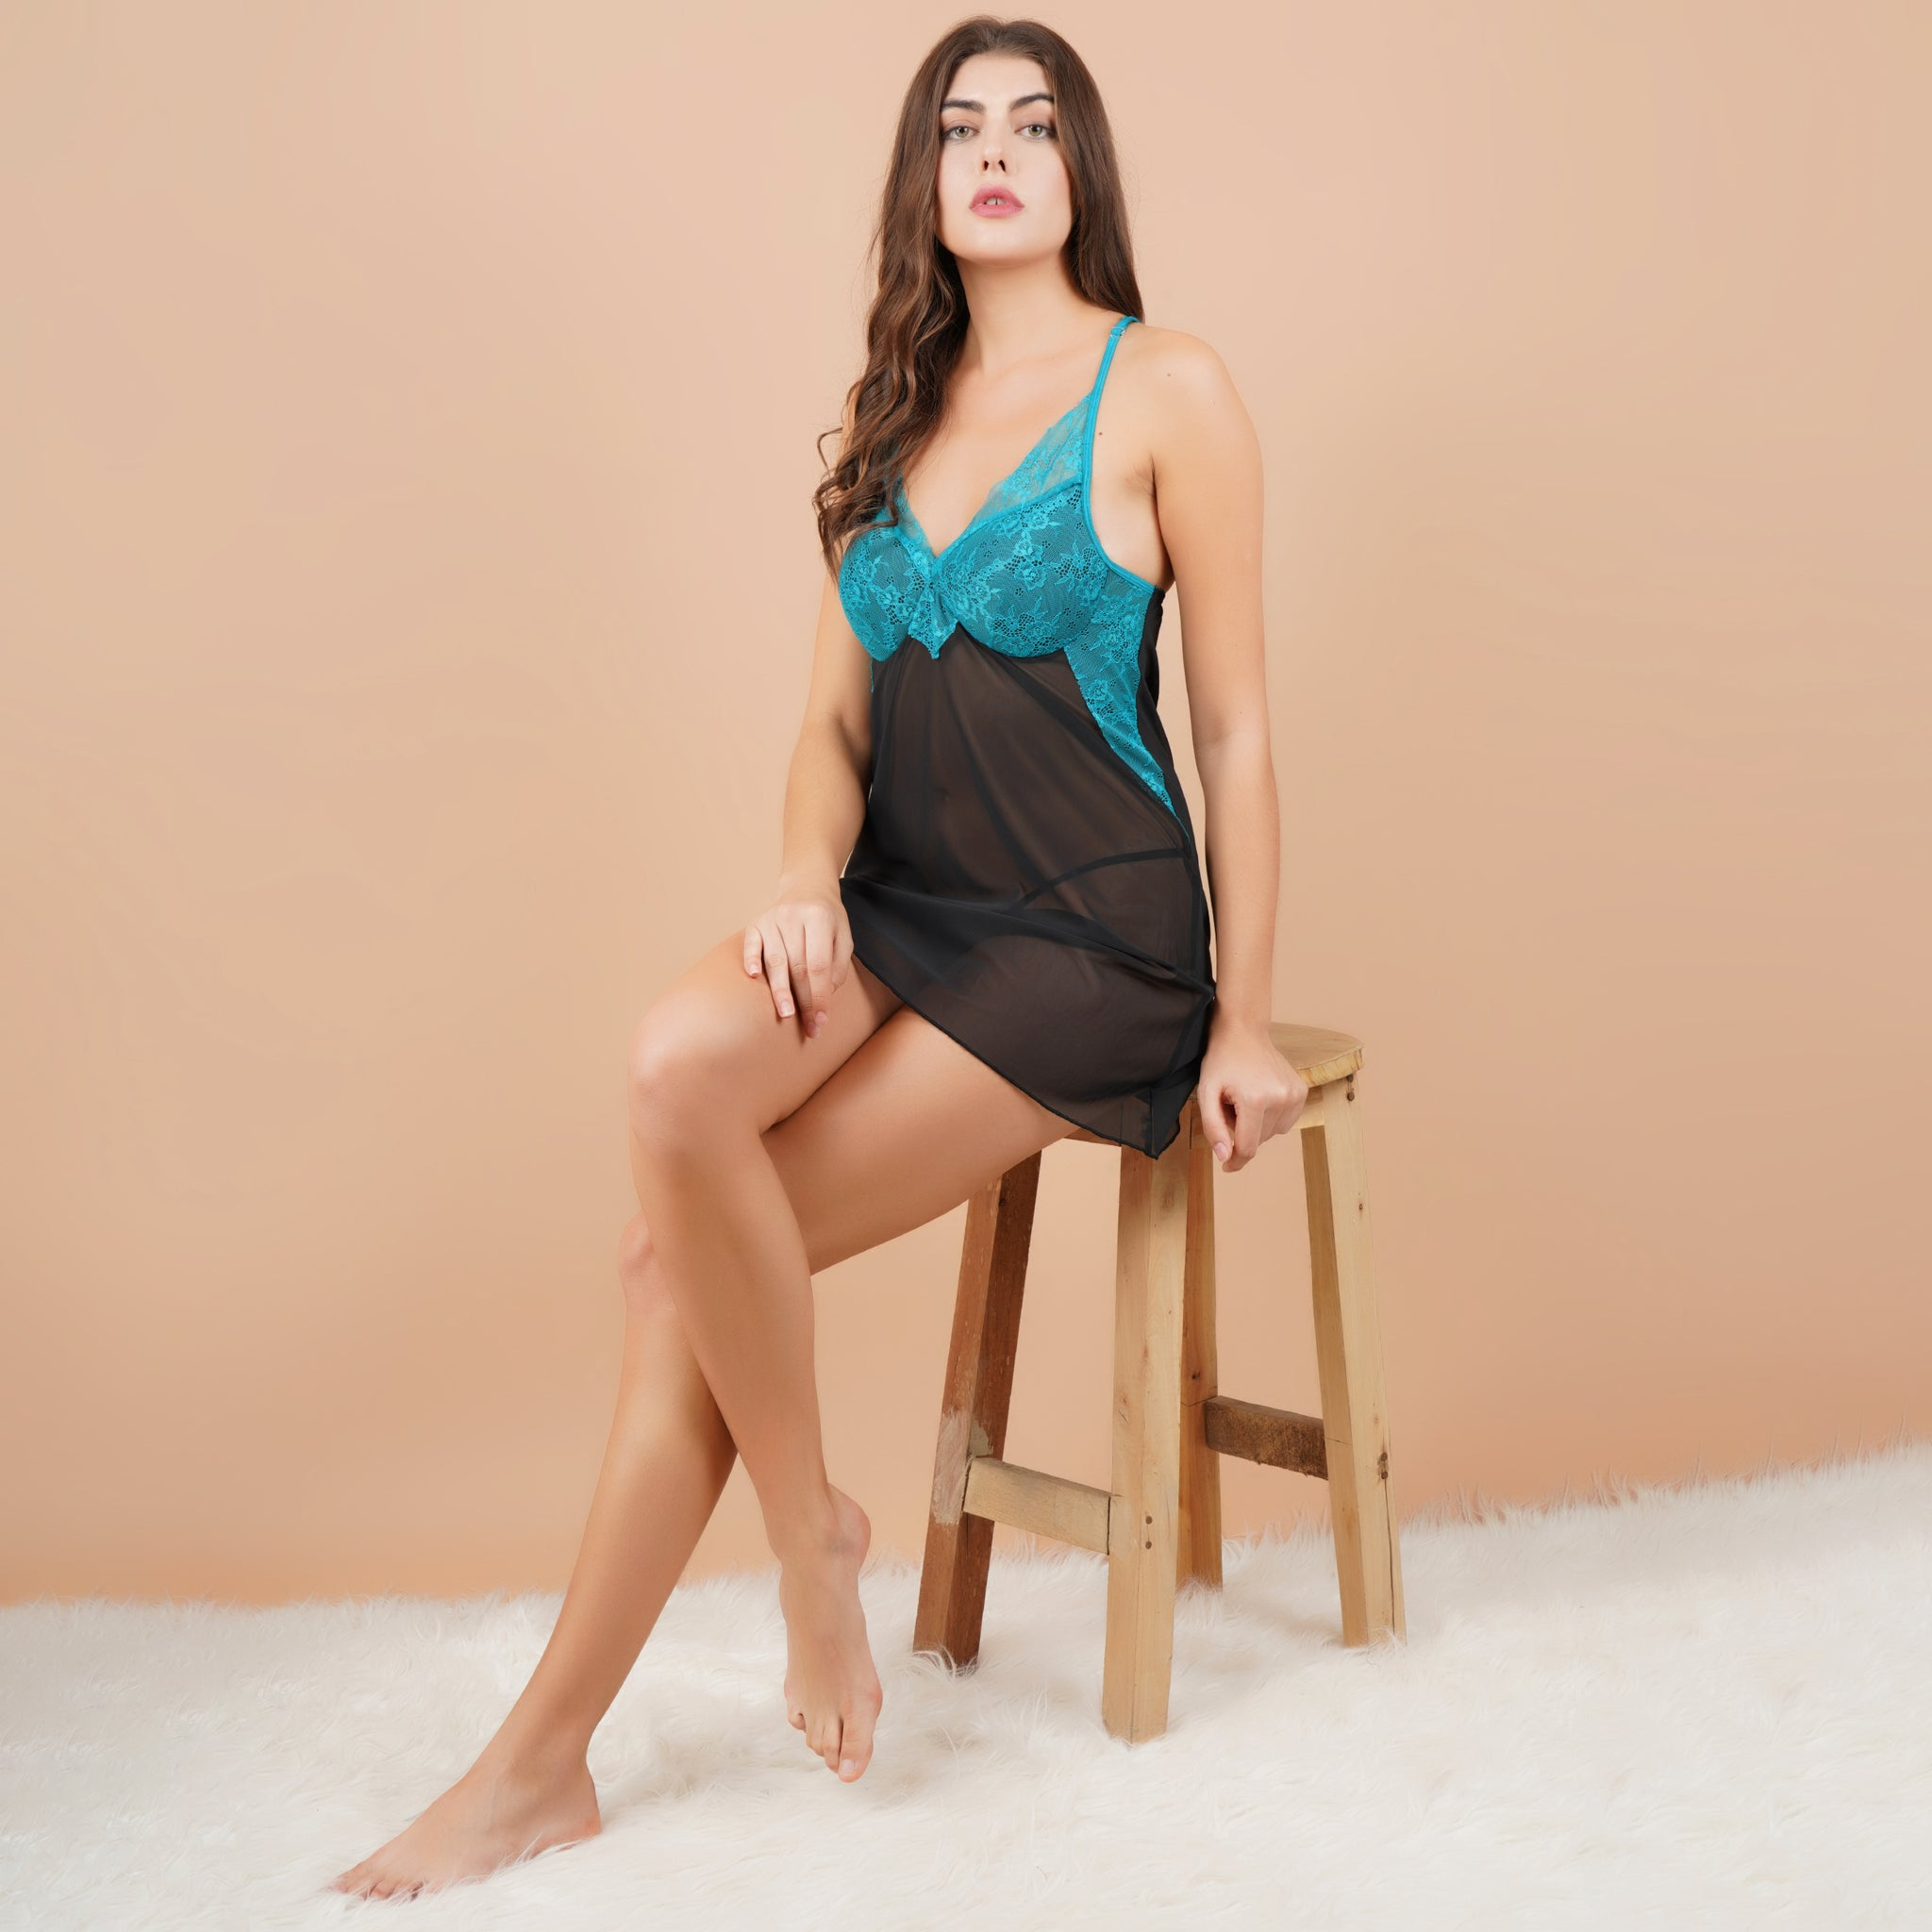 Ficuster V-Neck Turquoise Black Padded Babydoll Nightwear